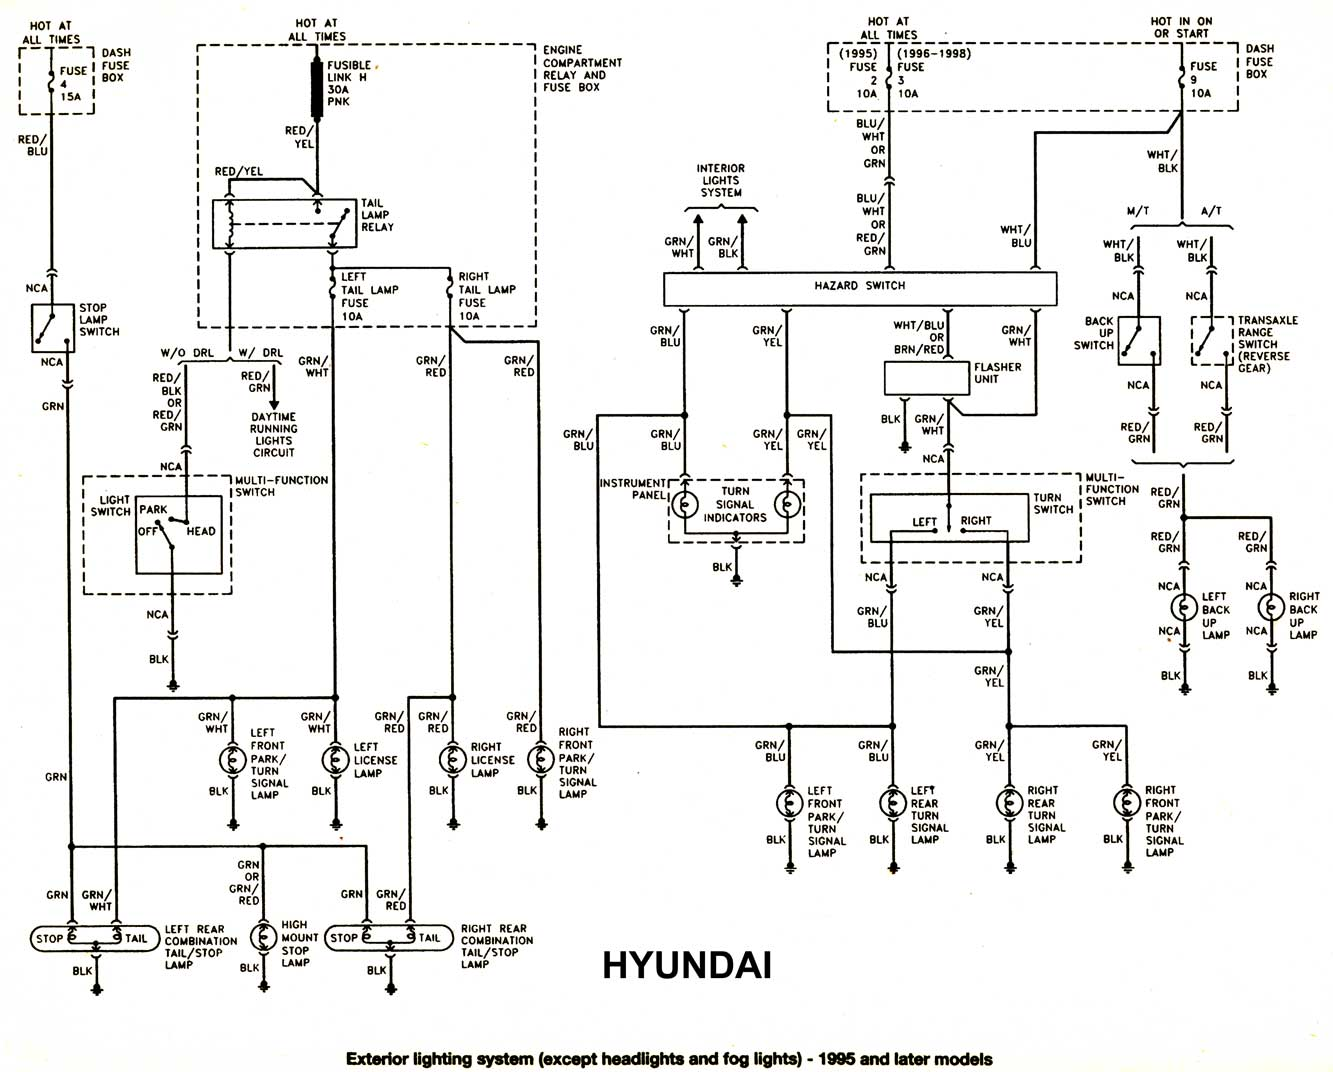 2005 Dodge Dakota Timing Chain Diagram likewise ShowAssembly as well 31zgm Turn Signal Relay Dodge Intrepid 2001 Relay Location also 1c4en 03 Dodge Cummins Ecm Pin Layout Diagram Color Code Wires To moreover JX0b 14034. on dodge ram 2500 wiring diagram